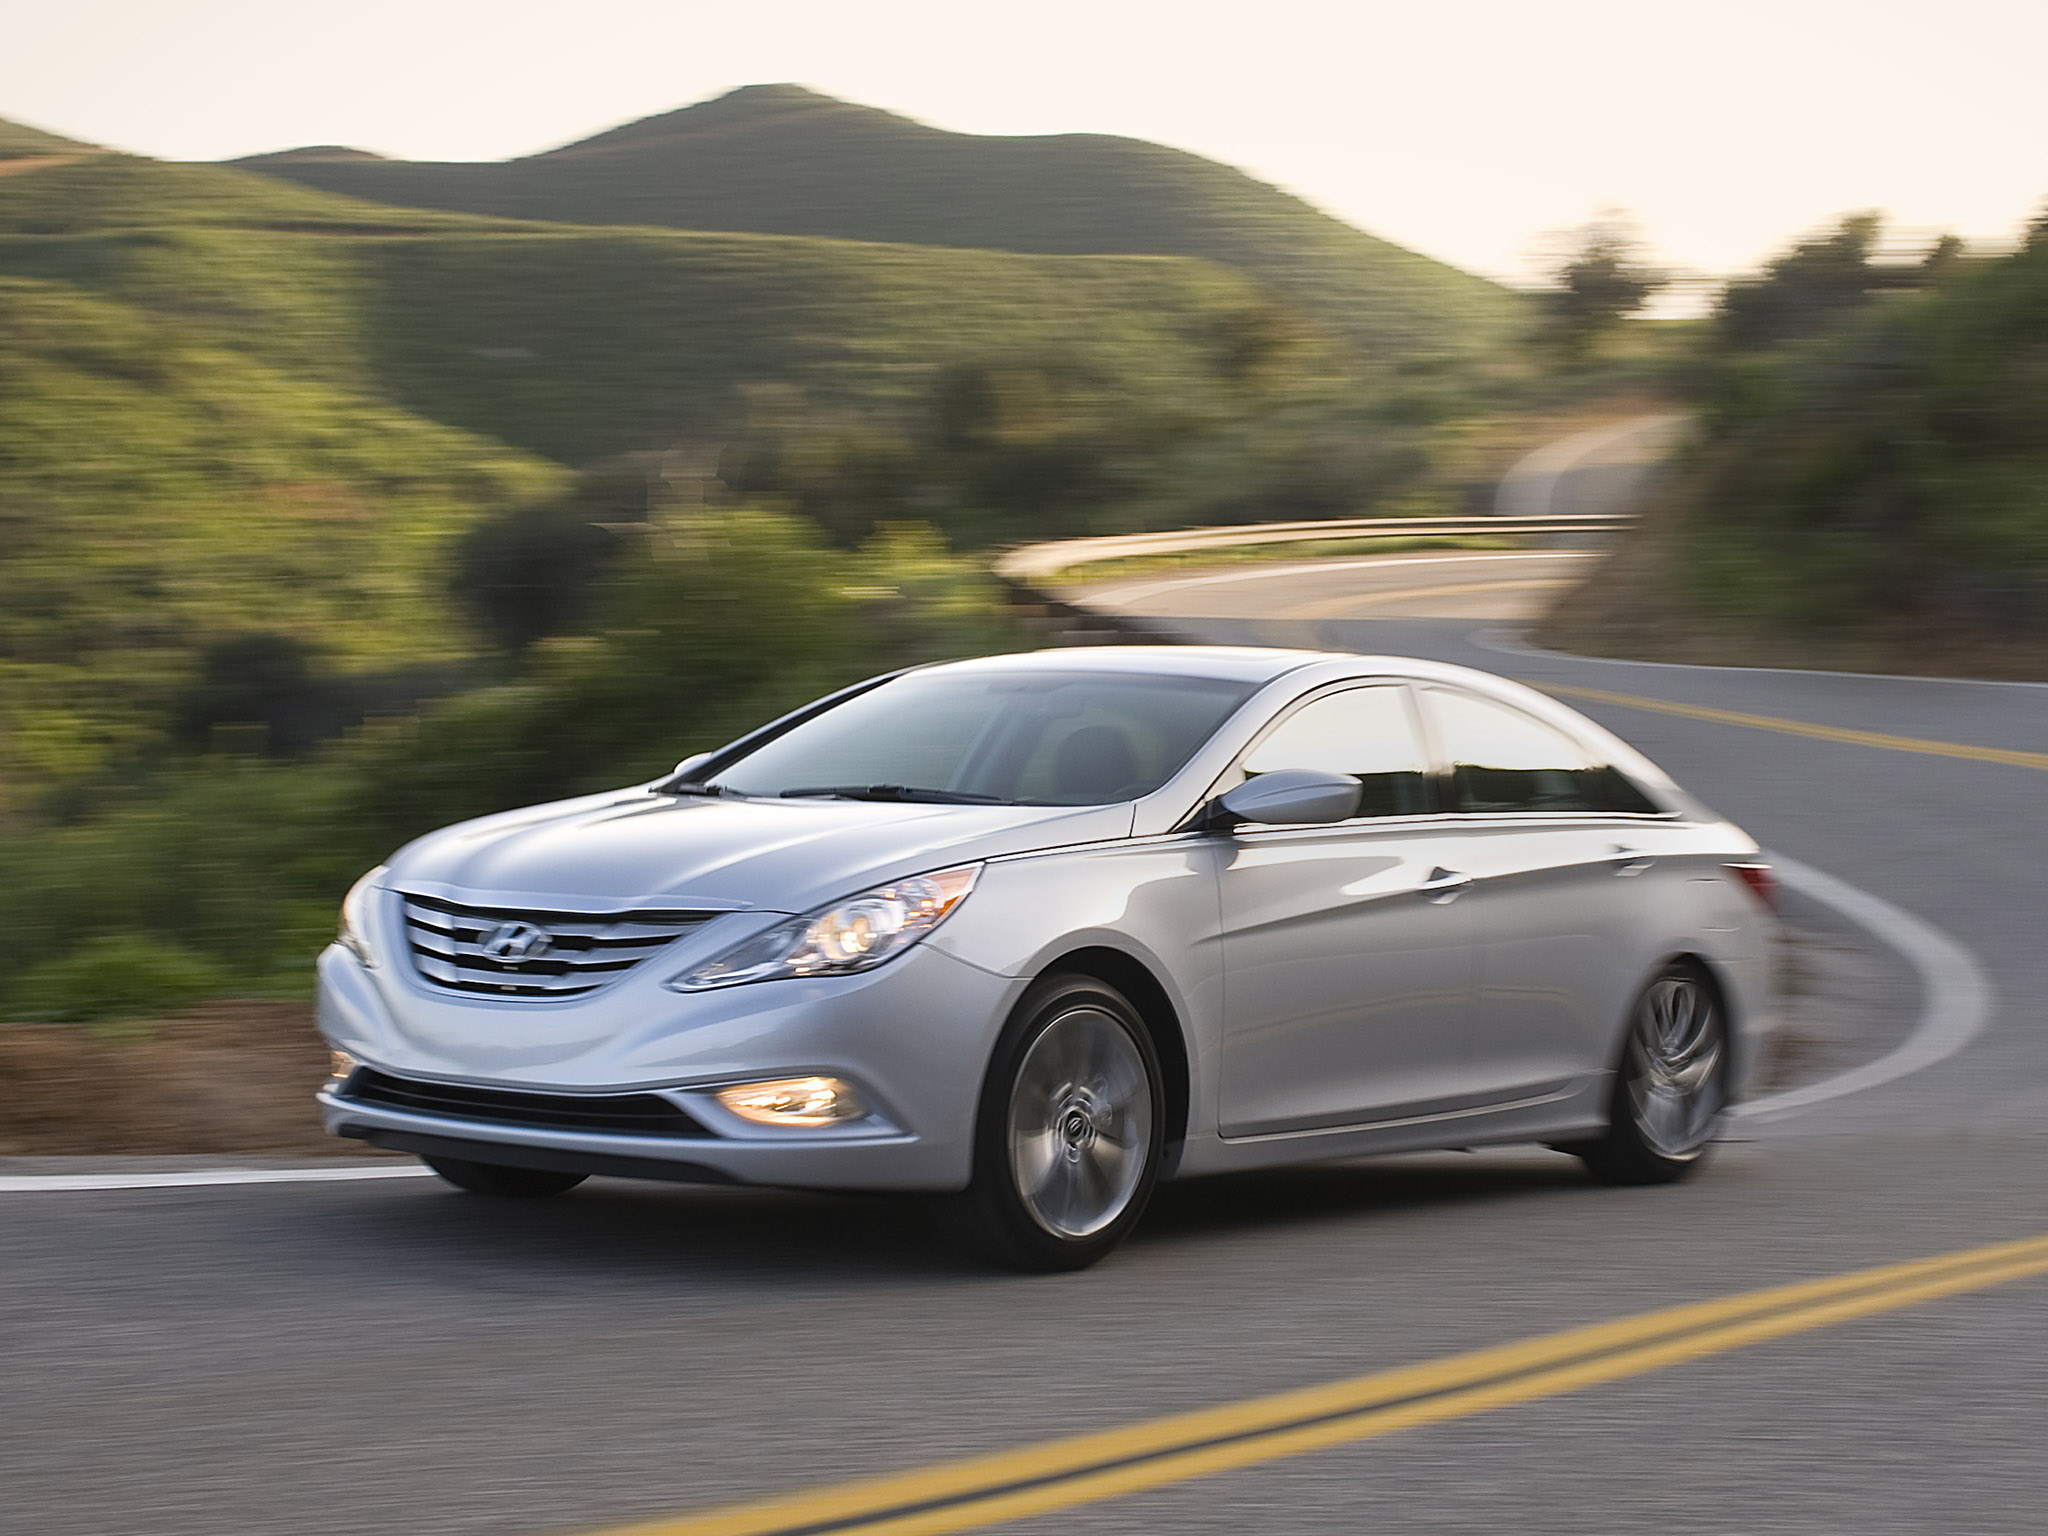 hyundai sonata 2 0 turbocharged gdi 2010 hyundai sonata 2 0 turbocharged gdi 2010 photo 02 car. Black Bedroom Furniture Sets. Home Design Ideas